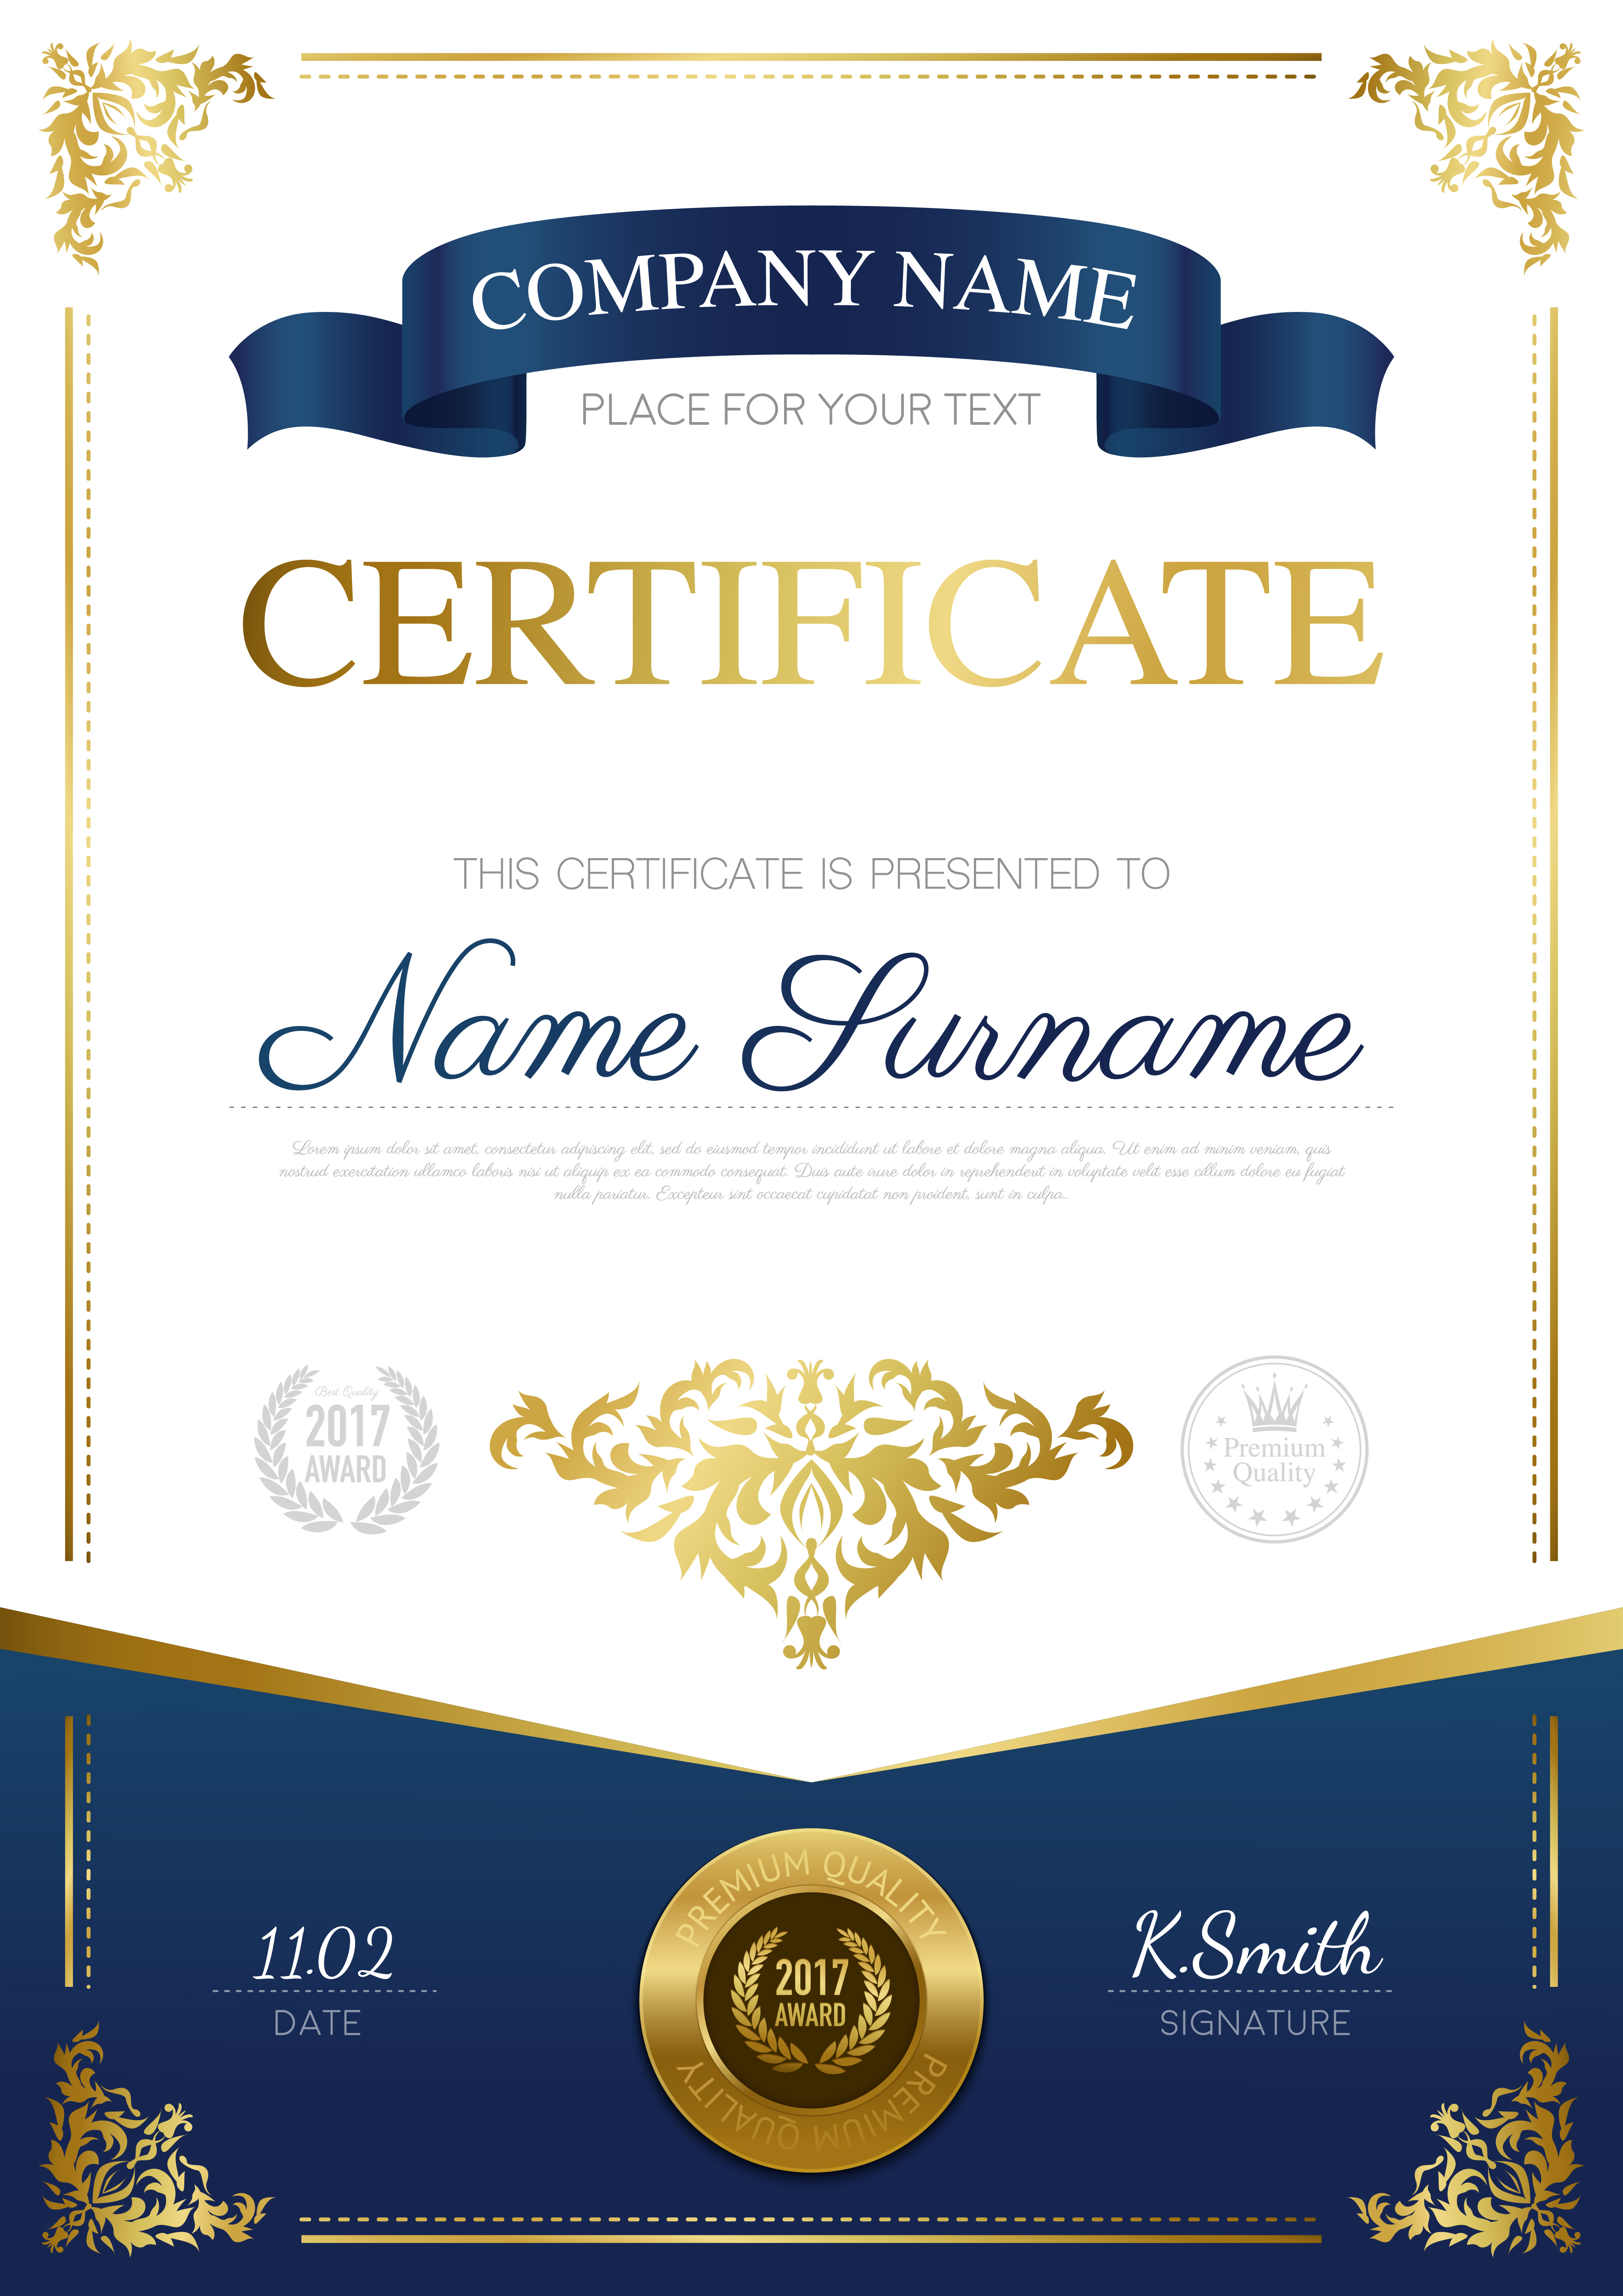 certificate stylish template vector award appreciation professional diploma border freepik background frame layout vectors illustration gold certificates recognition graphic vecteezy